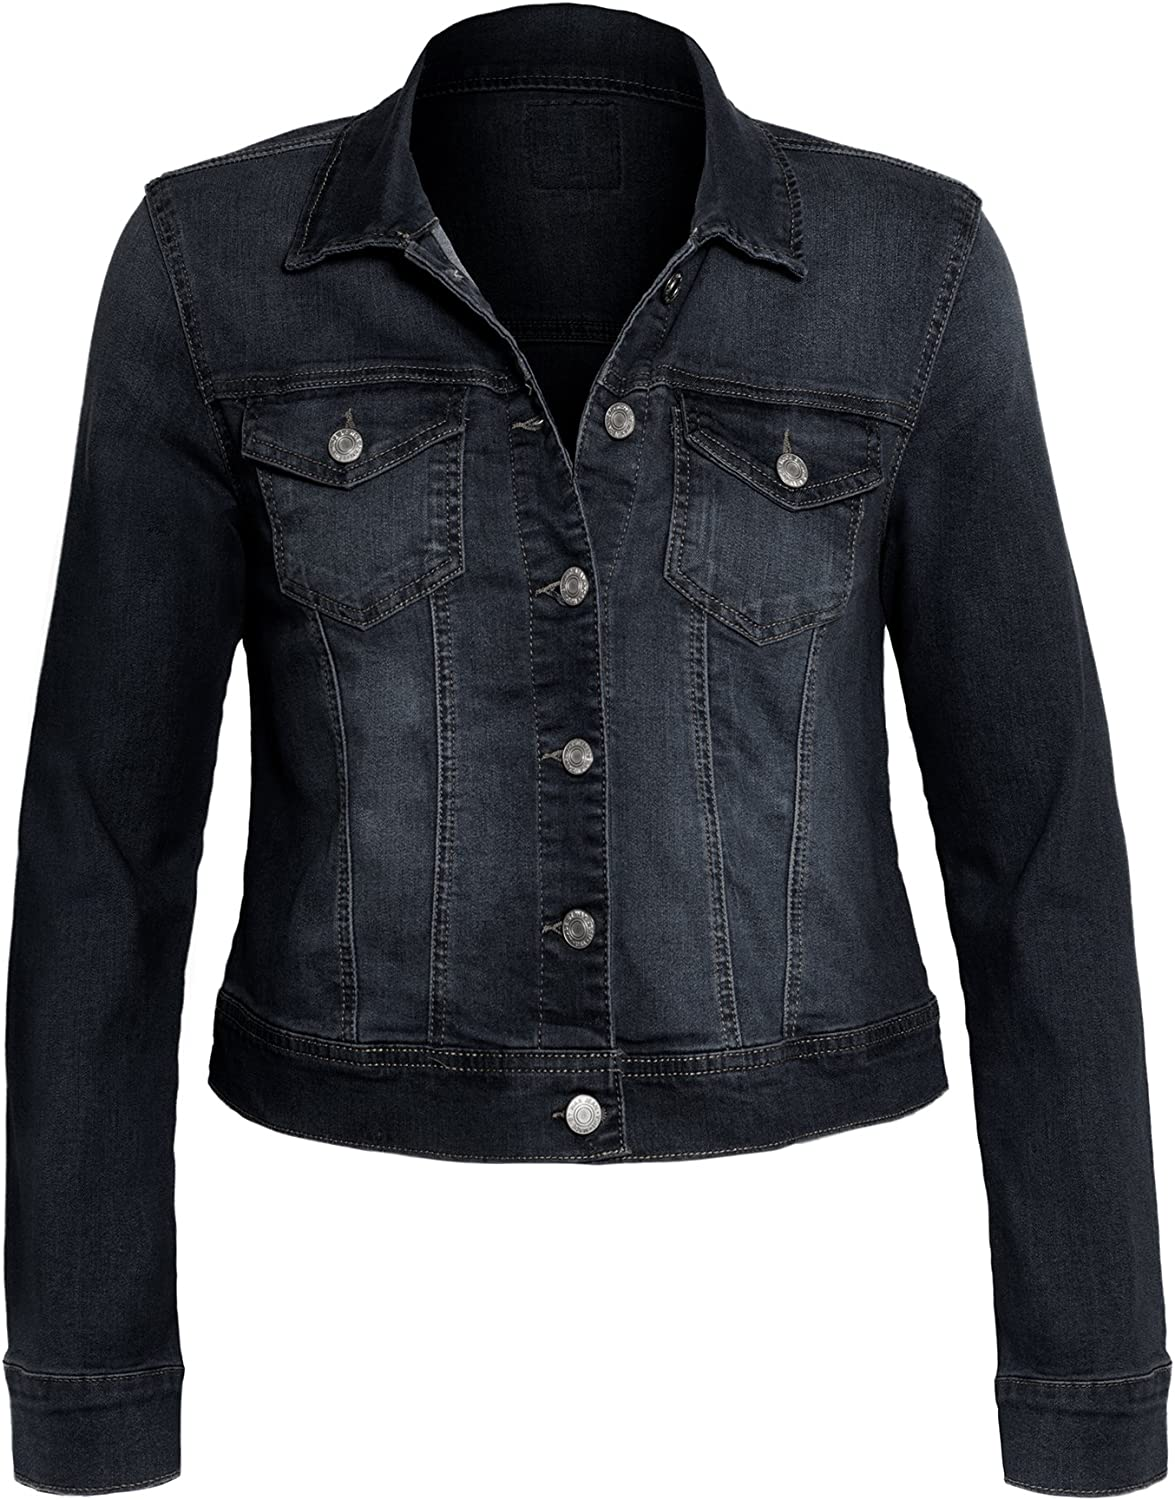 Hot From Hollywood Women's Button Down Long Sleeve Casual Plus Size Classic Outerwear Denim Jacket